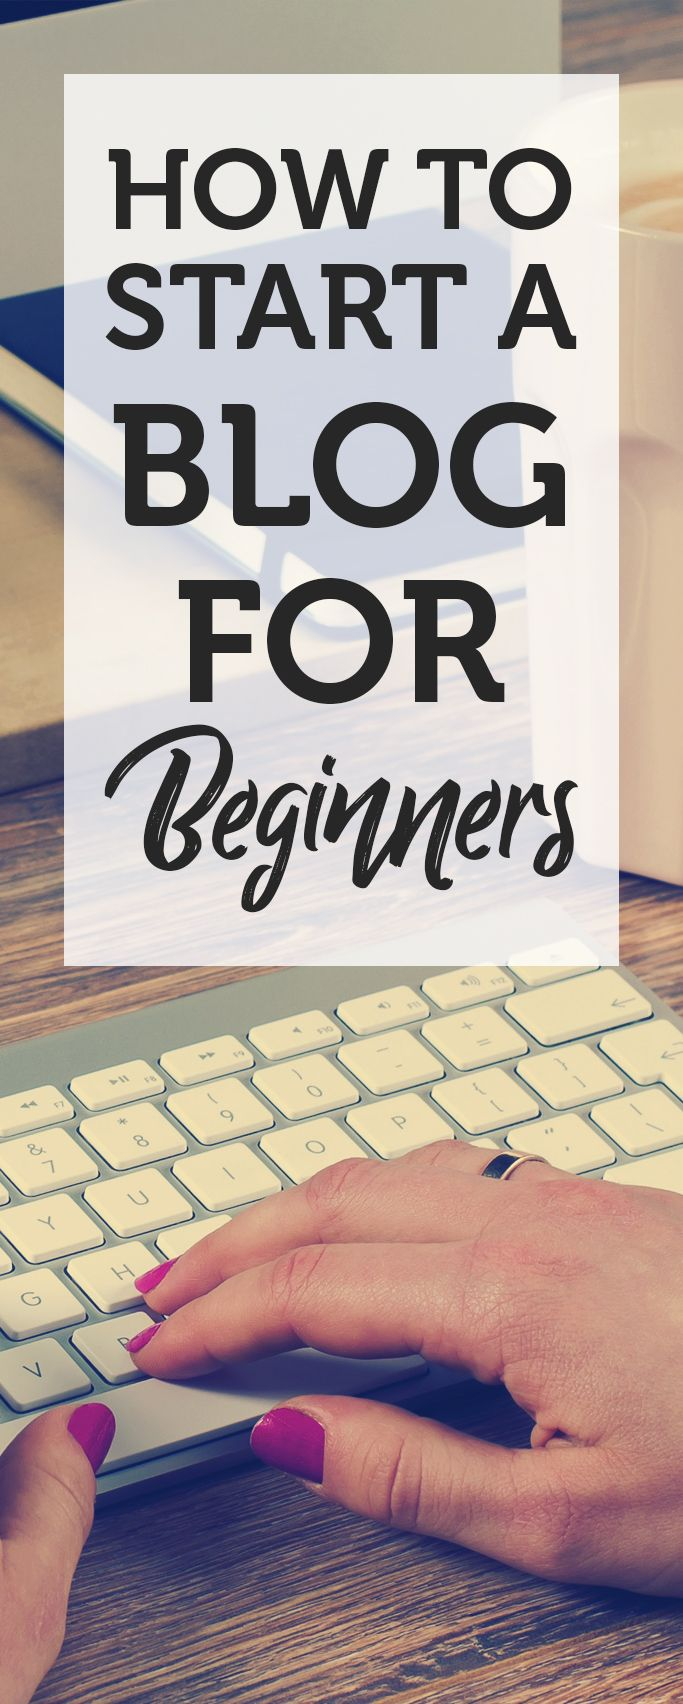 How To Blog for Beginners You want to start a blog, it's pretty easy these days. Learn how to easily setup your Wordpress blog with this step-by-step walkthrough. #blogging #beginner #easy #wordpress